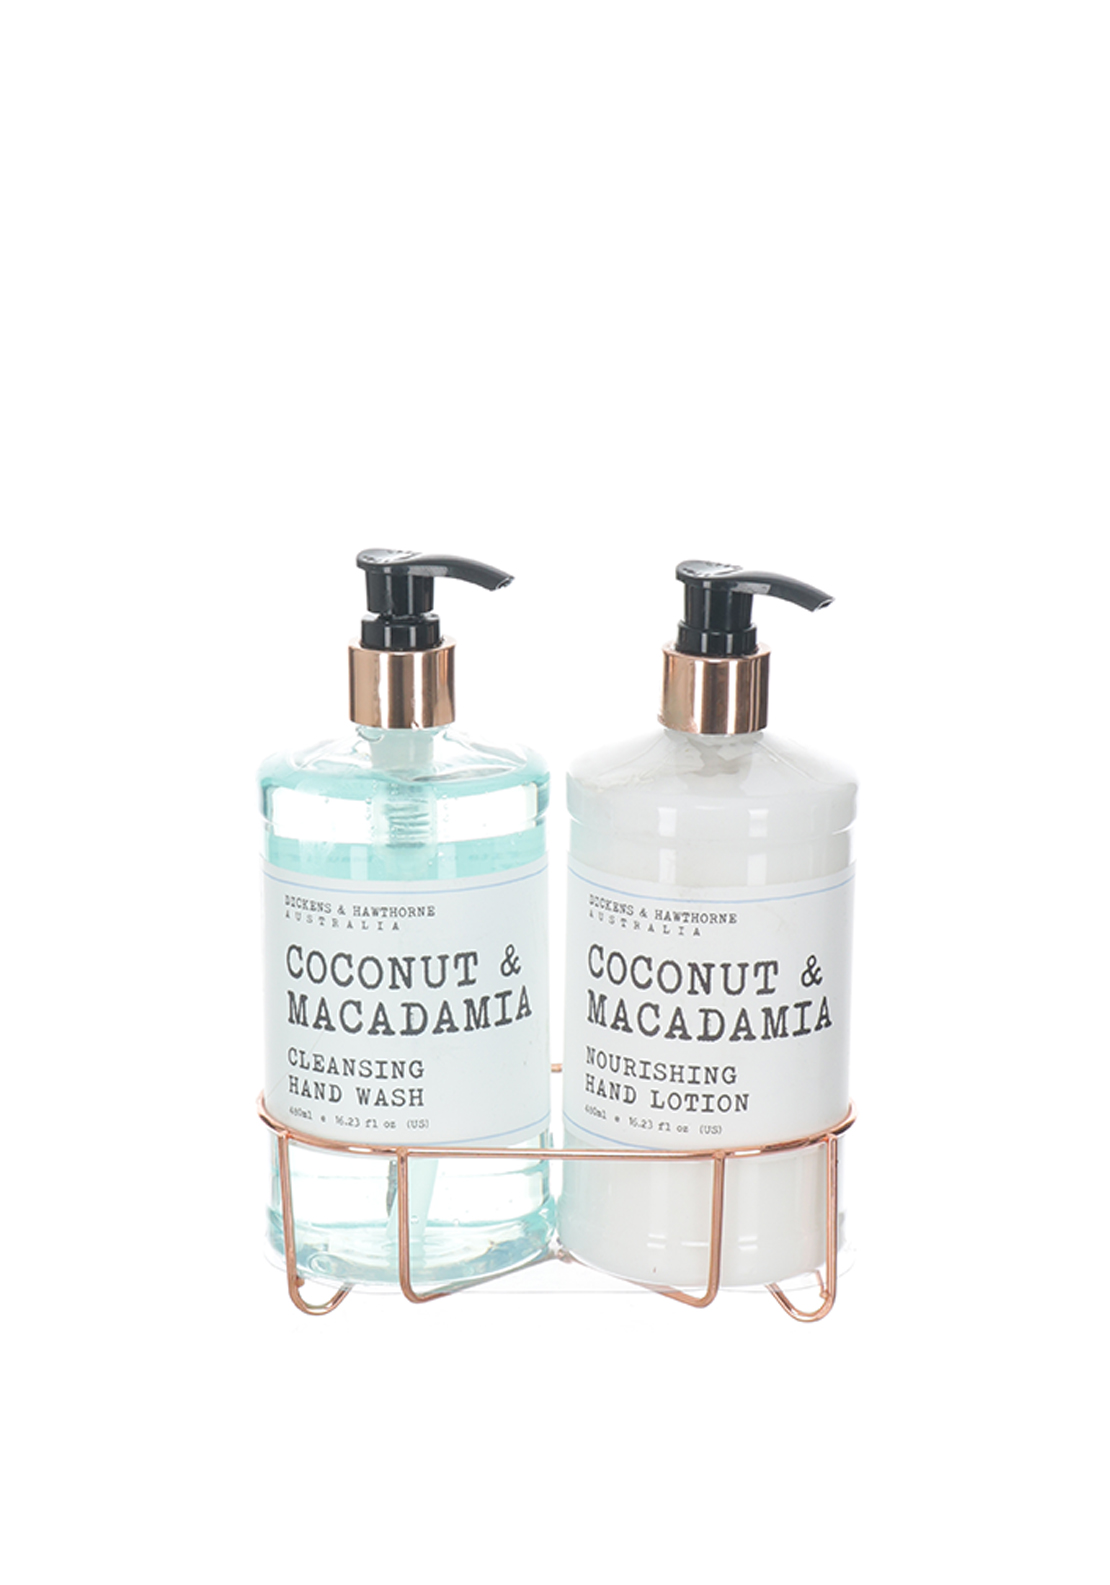 Dickens & Hawthorne Coconut & Macadamia Cleansing Hand Wash and Lotion, 480ml